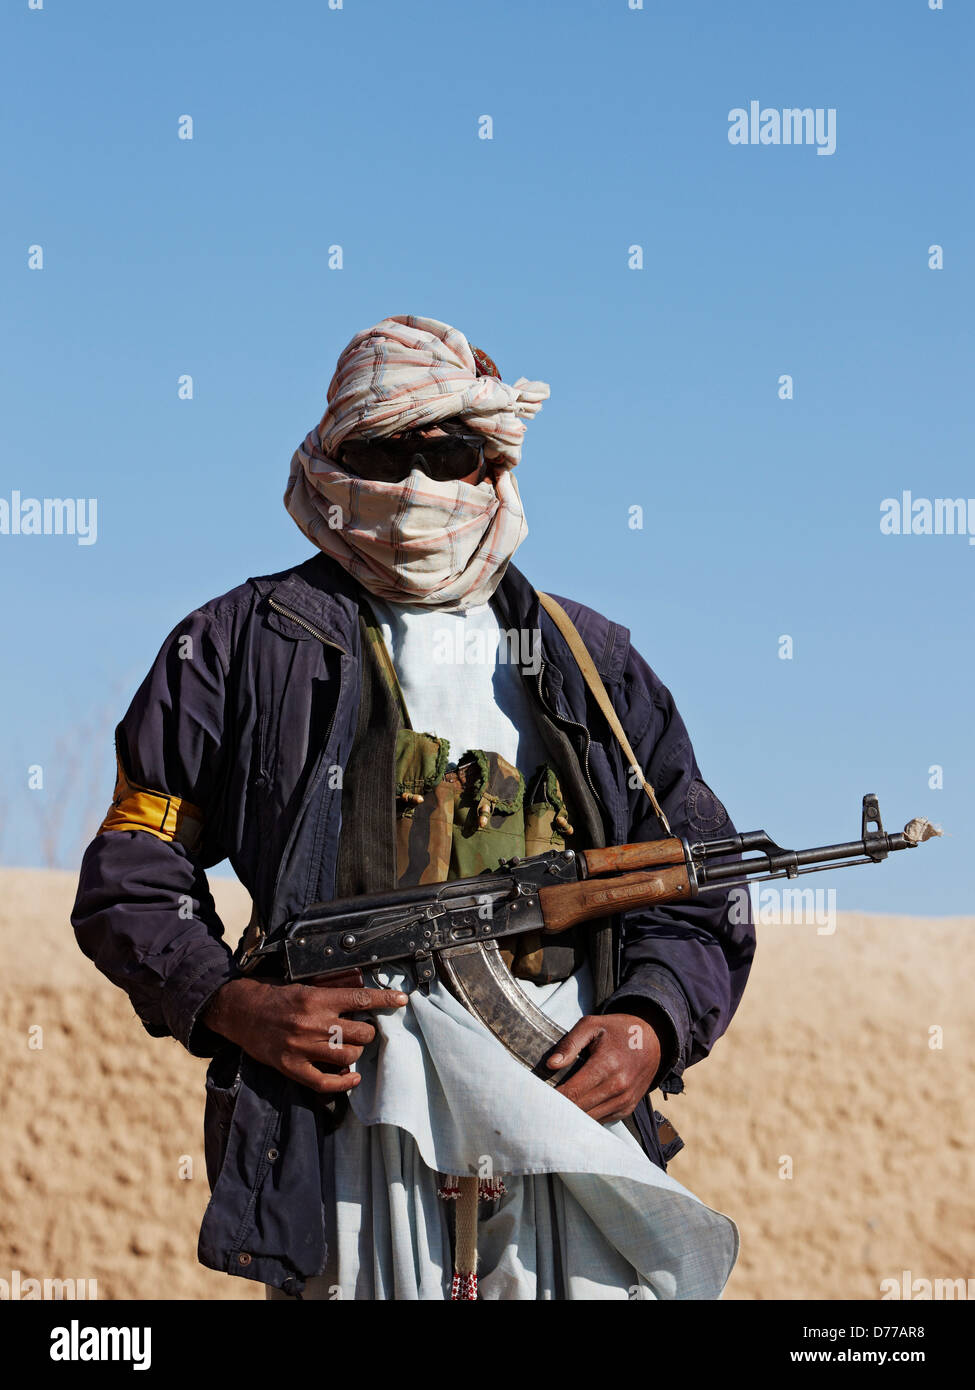 A Militia Member Holds AK47 Assault Rifle During Combat Operation in Afghanistan's Helmand Province - Stock Image